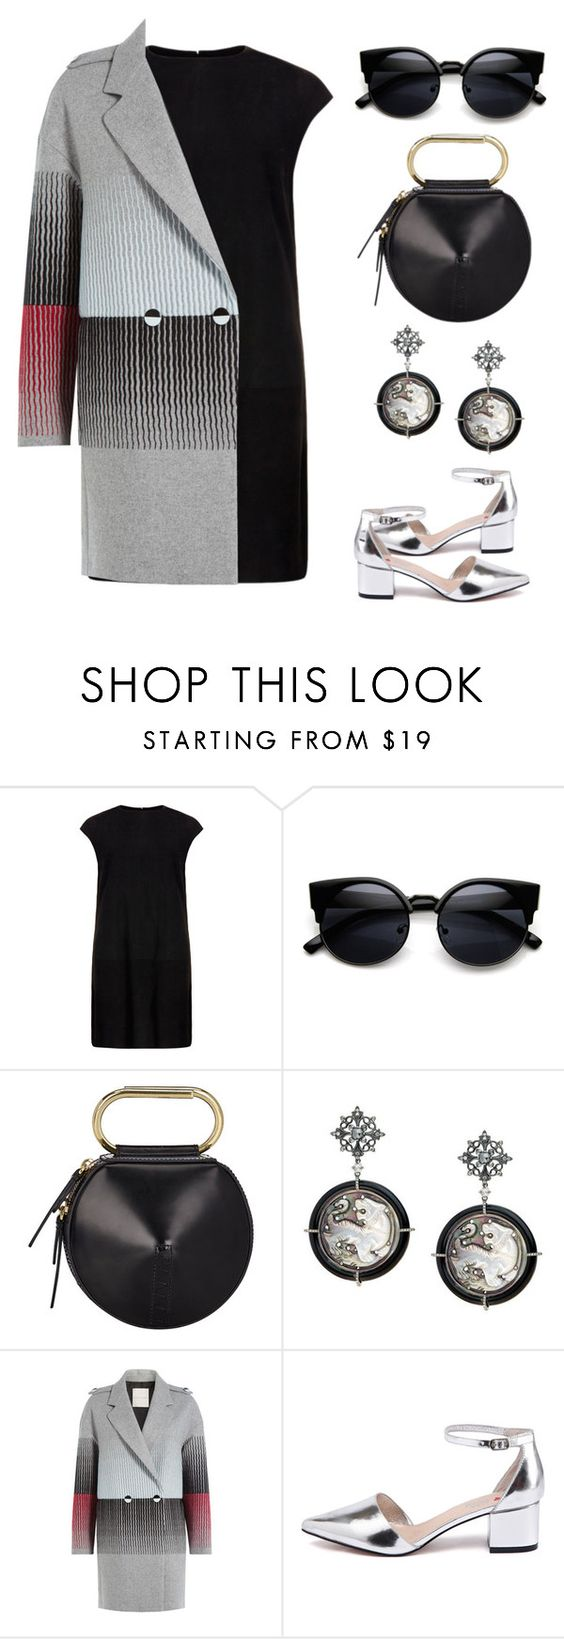 """Charcoal"" by moonvi2 ❤ liked on Polyvore featuring MuuBaa, 3.1 Phillip Lim, Marco de Vincenzo, women's clothing, women, female, woman, misses and juniors"